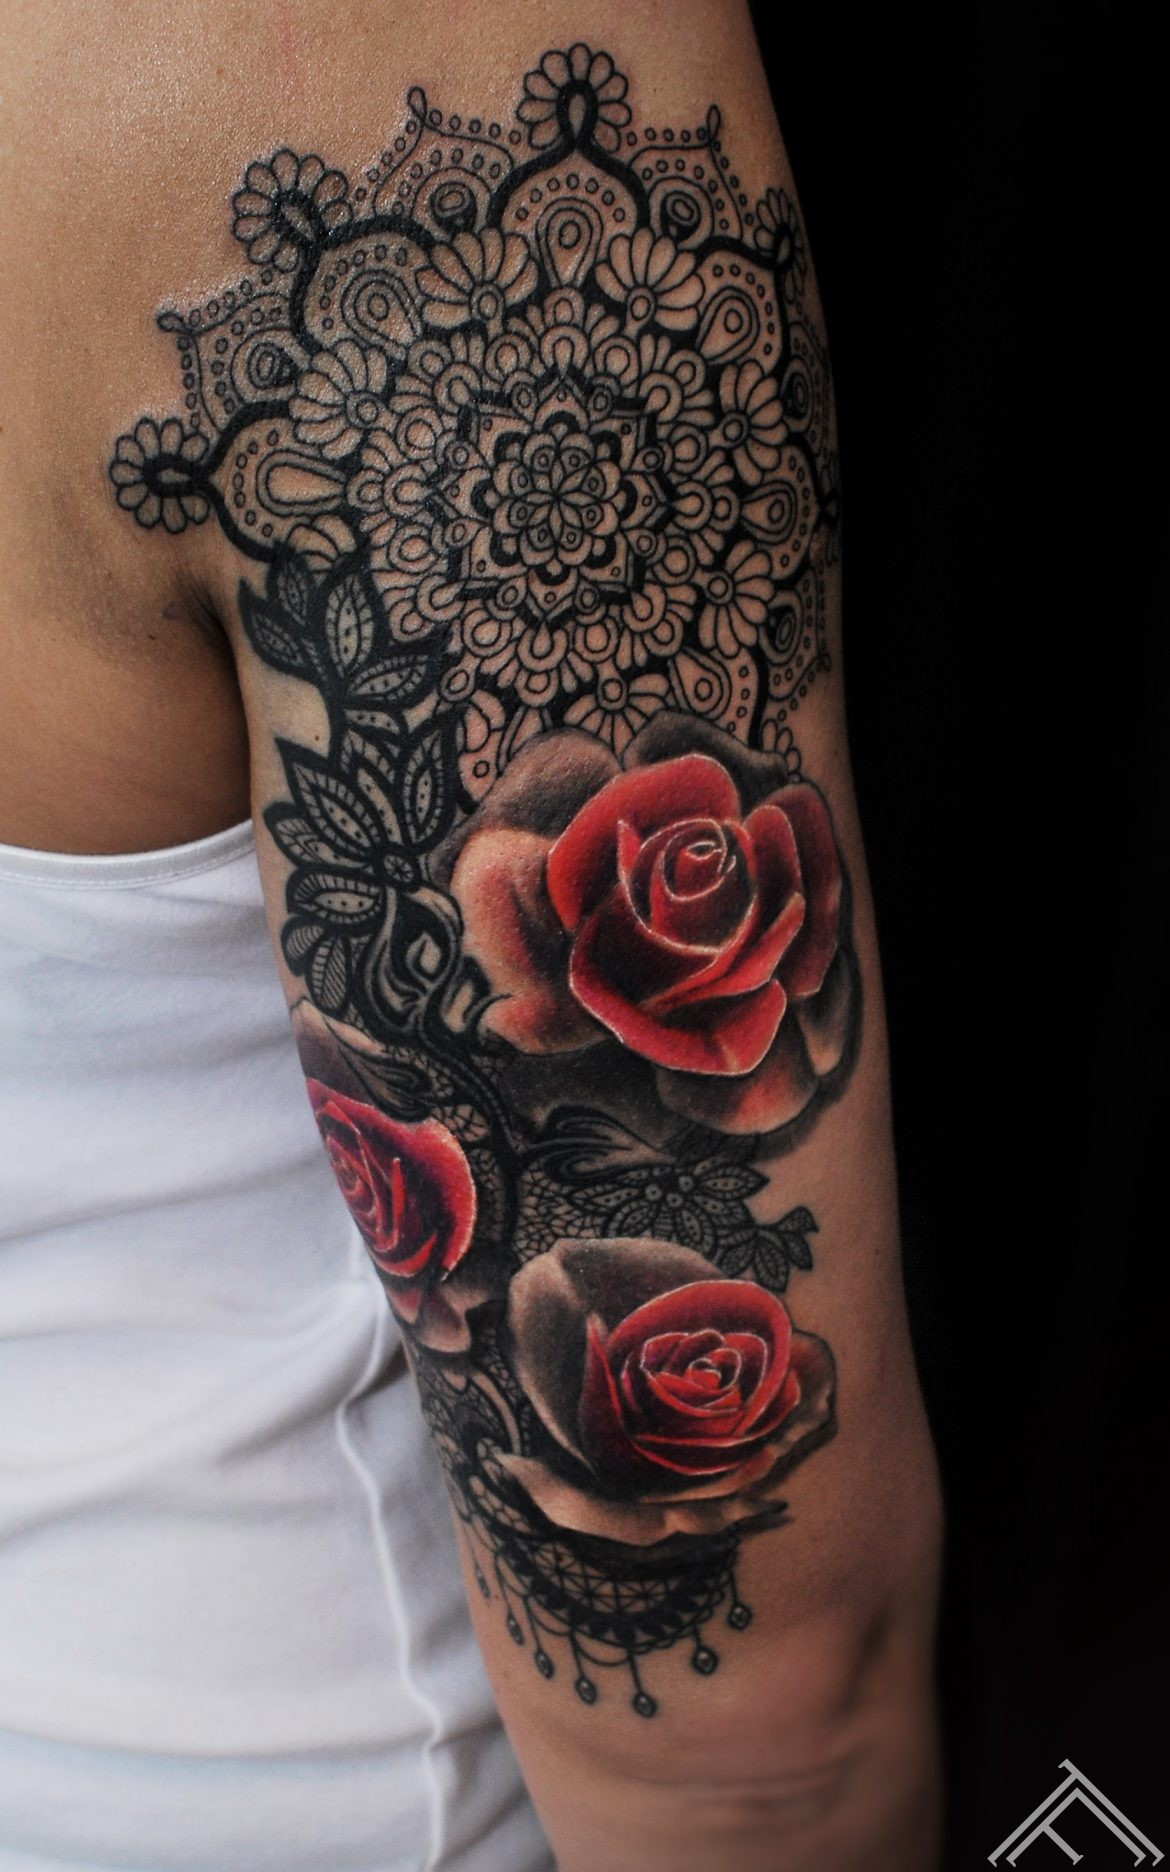 janisanderson-tattoo-tattoofrequency-roses-mandala-lace-rozes-tetovejums-tattoo